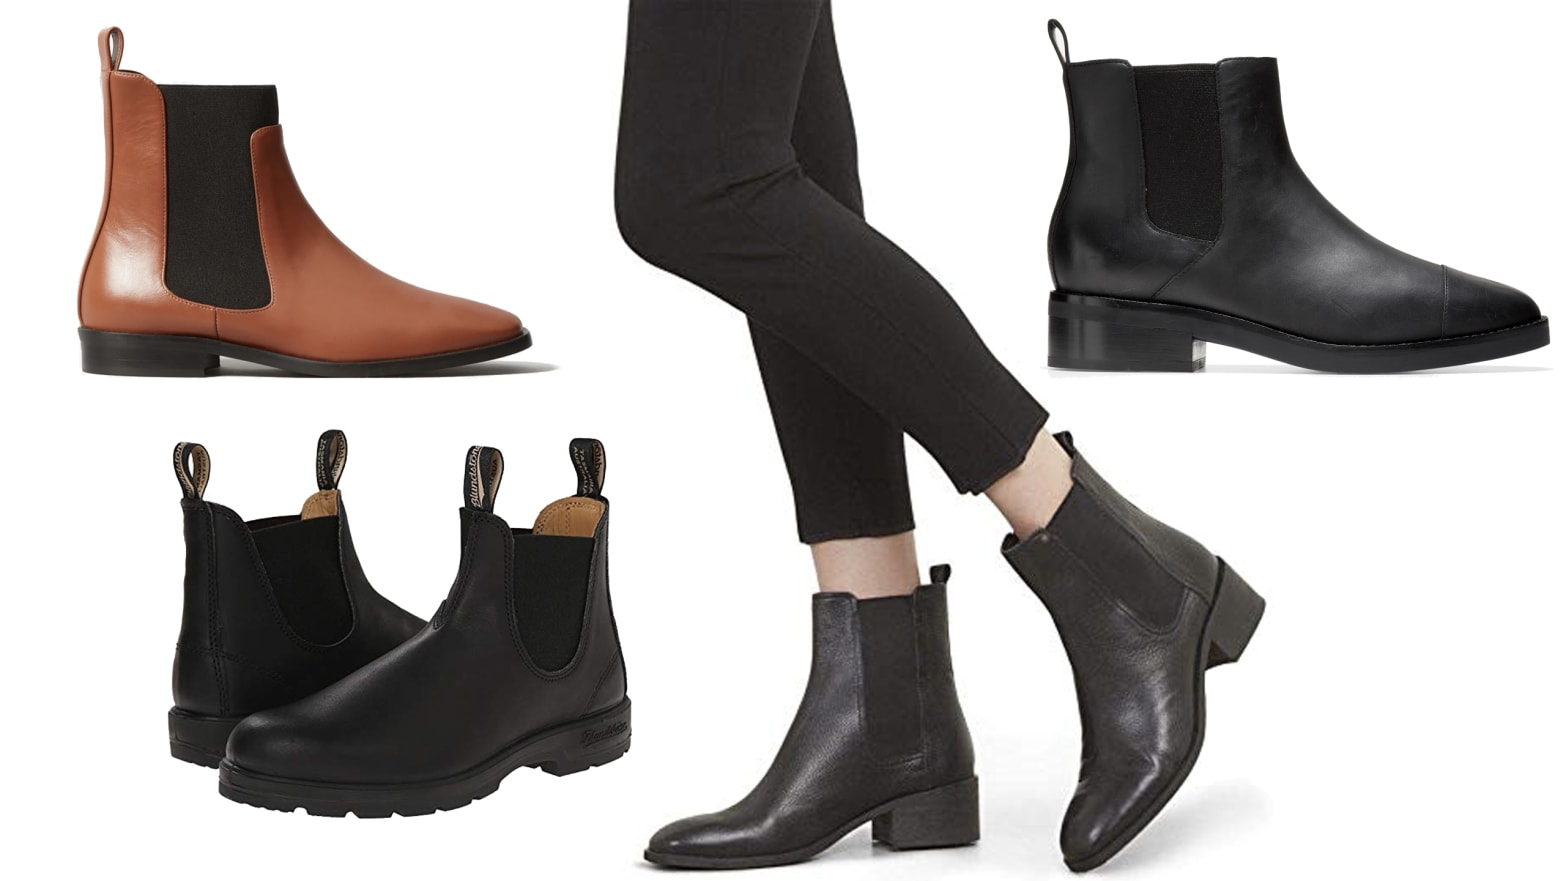 Women's Boots 101: Find The Right Boots For You